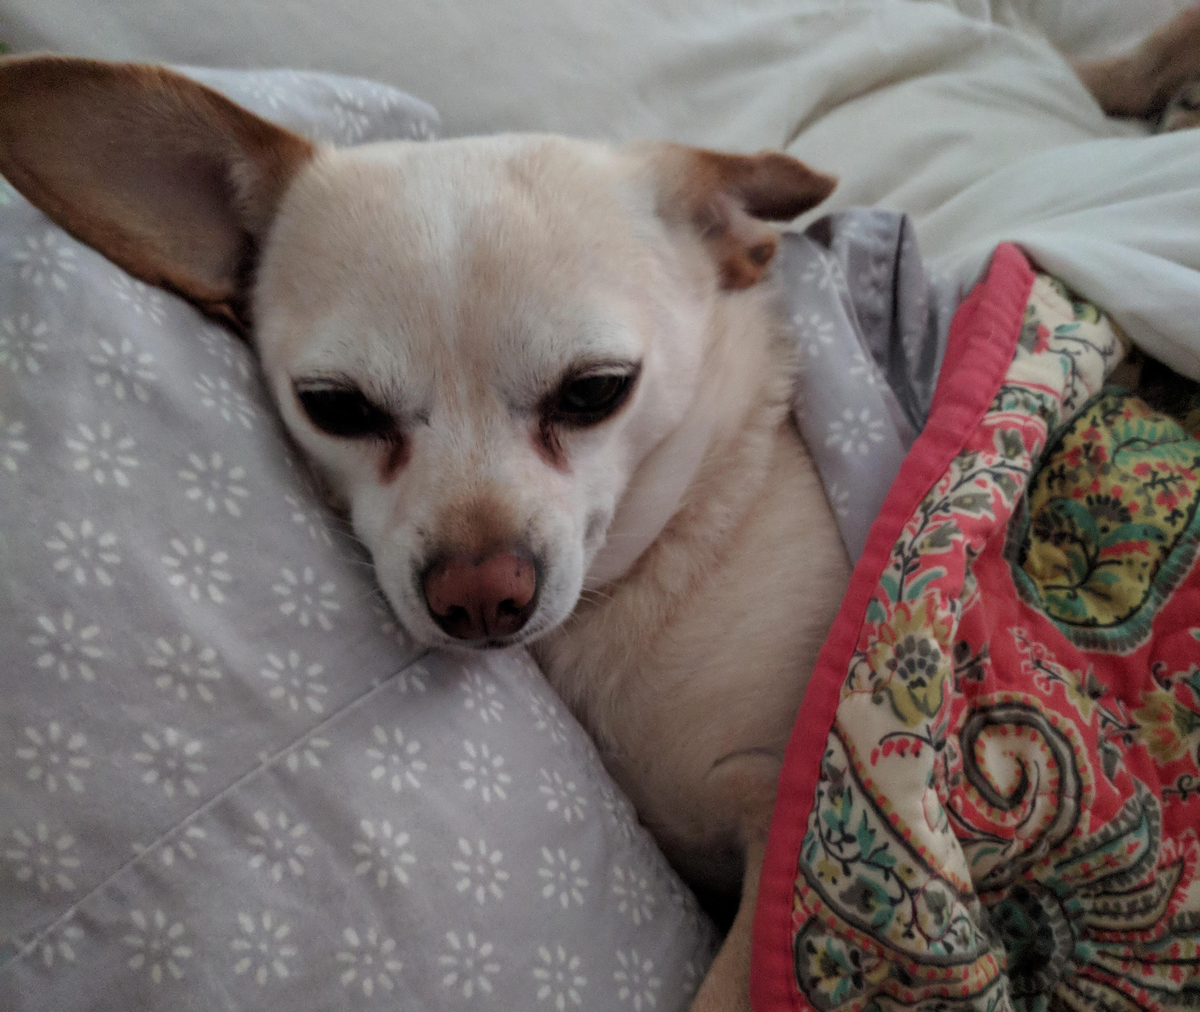 Chihuahua falls asleep tucked into a bed.